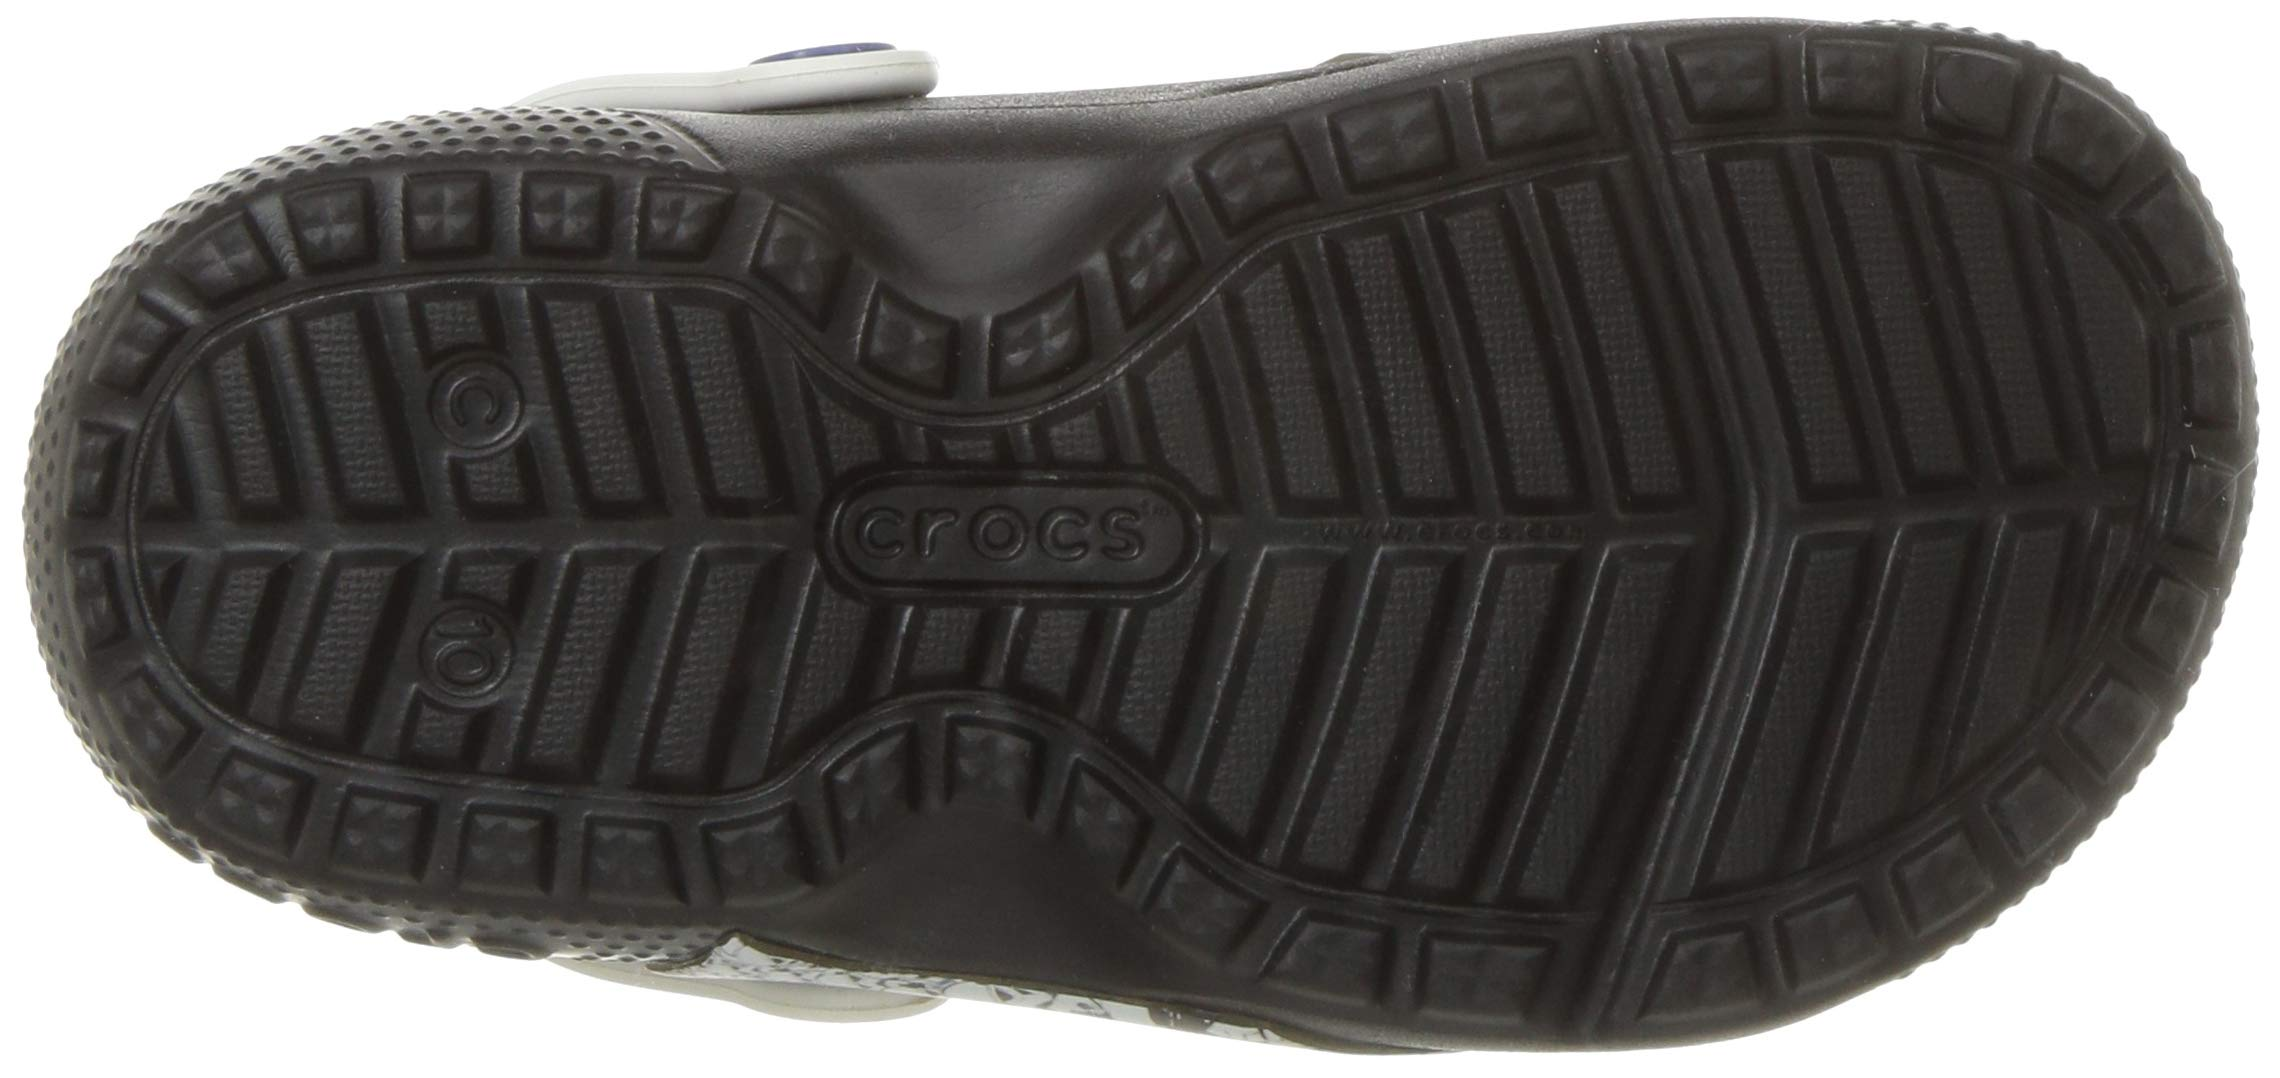 Crocs Unisex FunLab Lined Stormtrooper Clog, Black, 13 M US Little Kid by Crocs (Image #3)